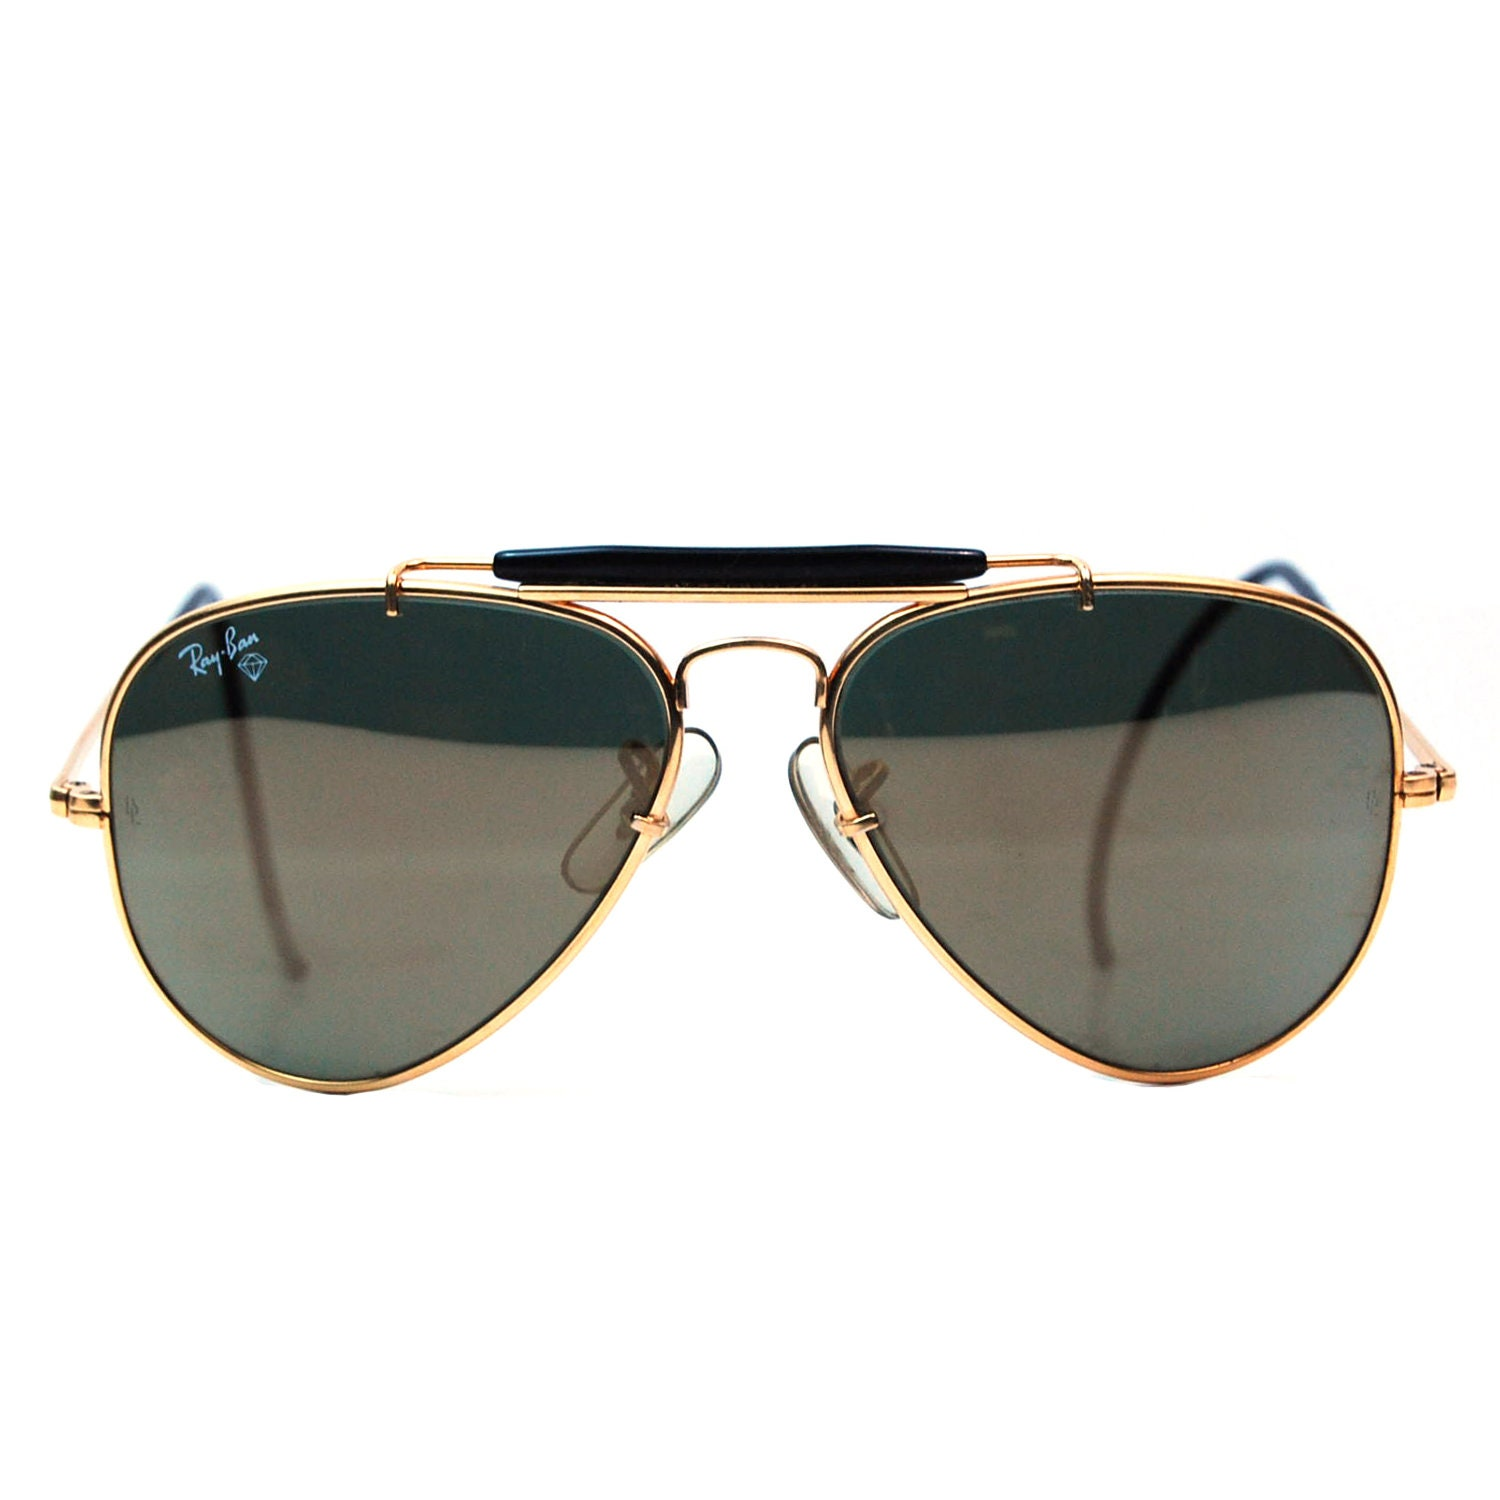 luxottica swot analysis Eyewear market: global industry analysis, size, share, growth and forecast 2015 to 2025 by future market insights.